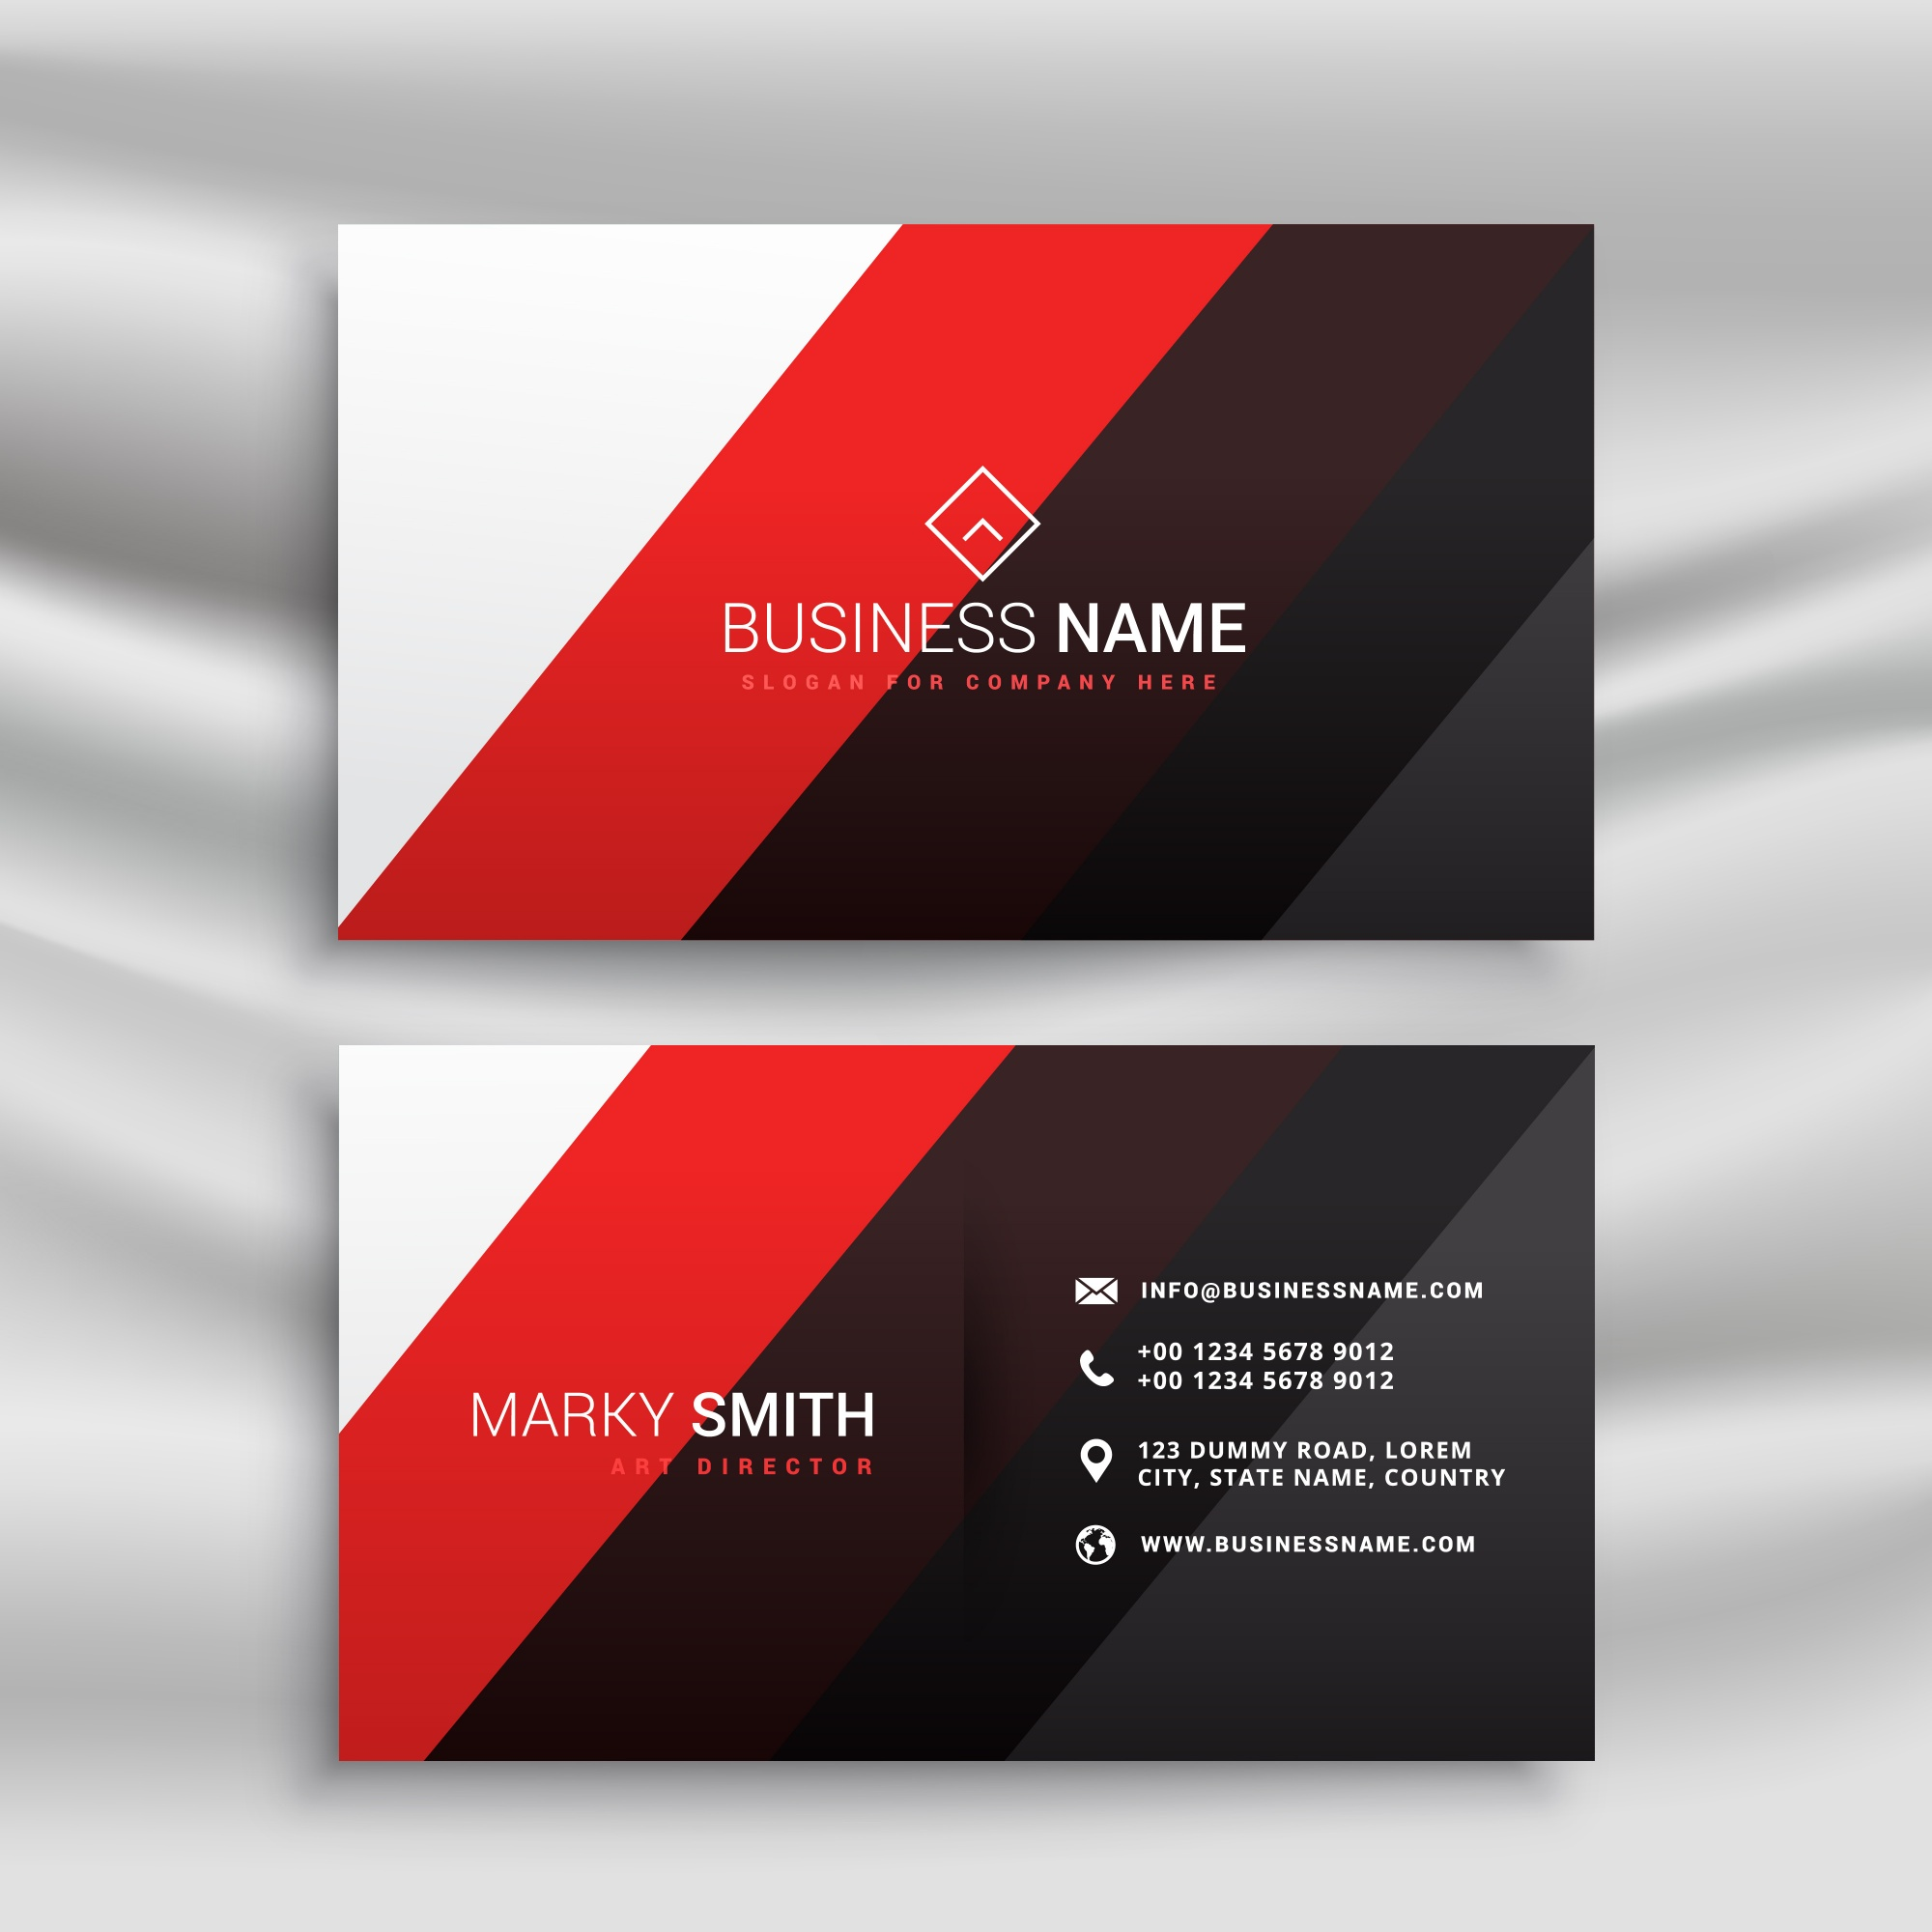 Modern red, black and black business card